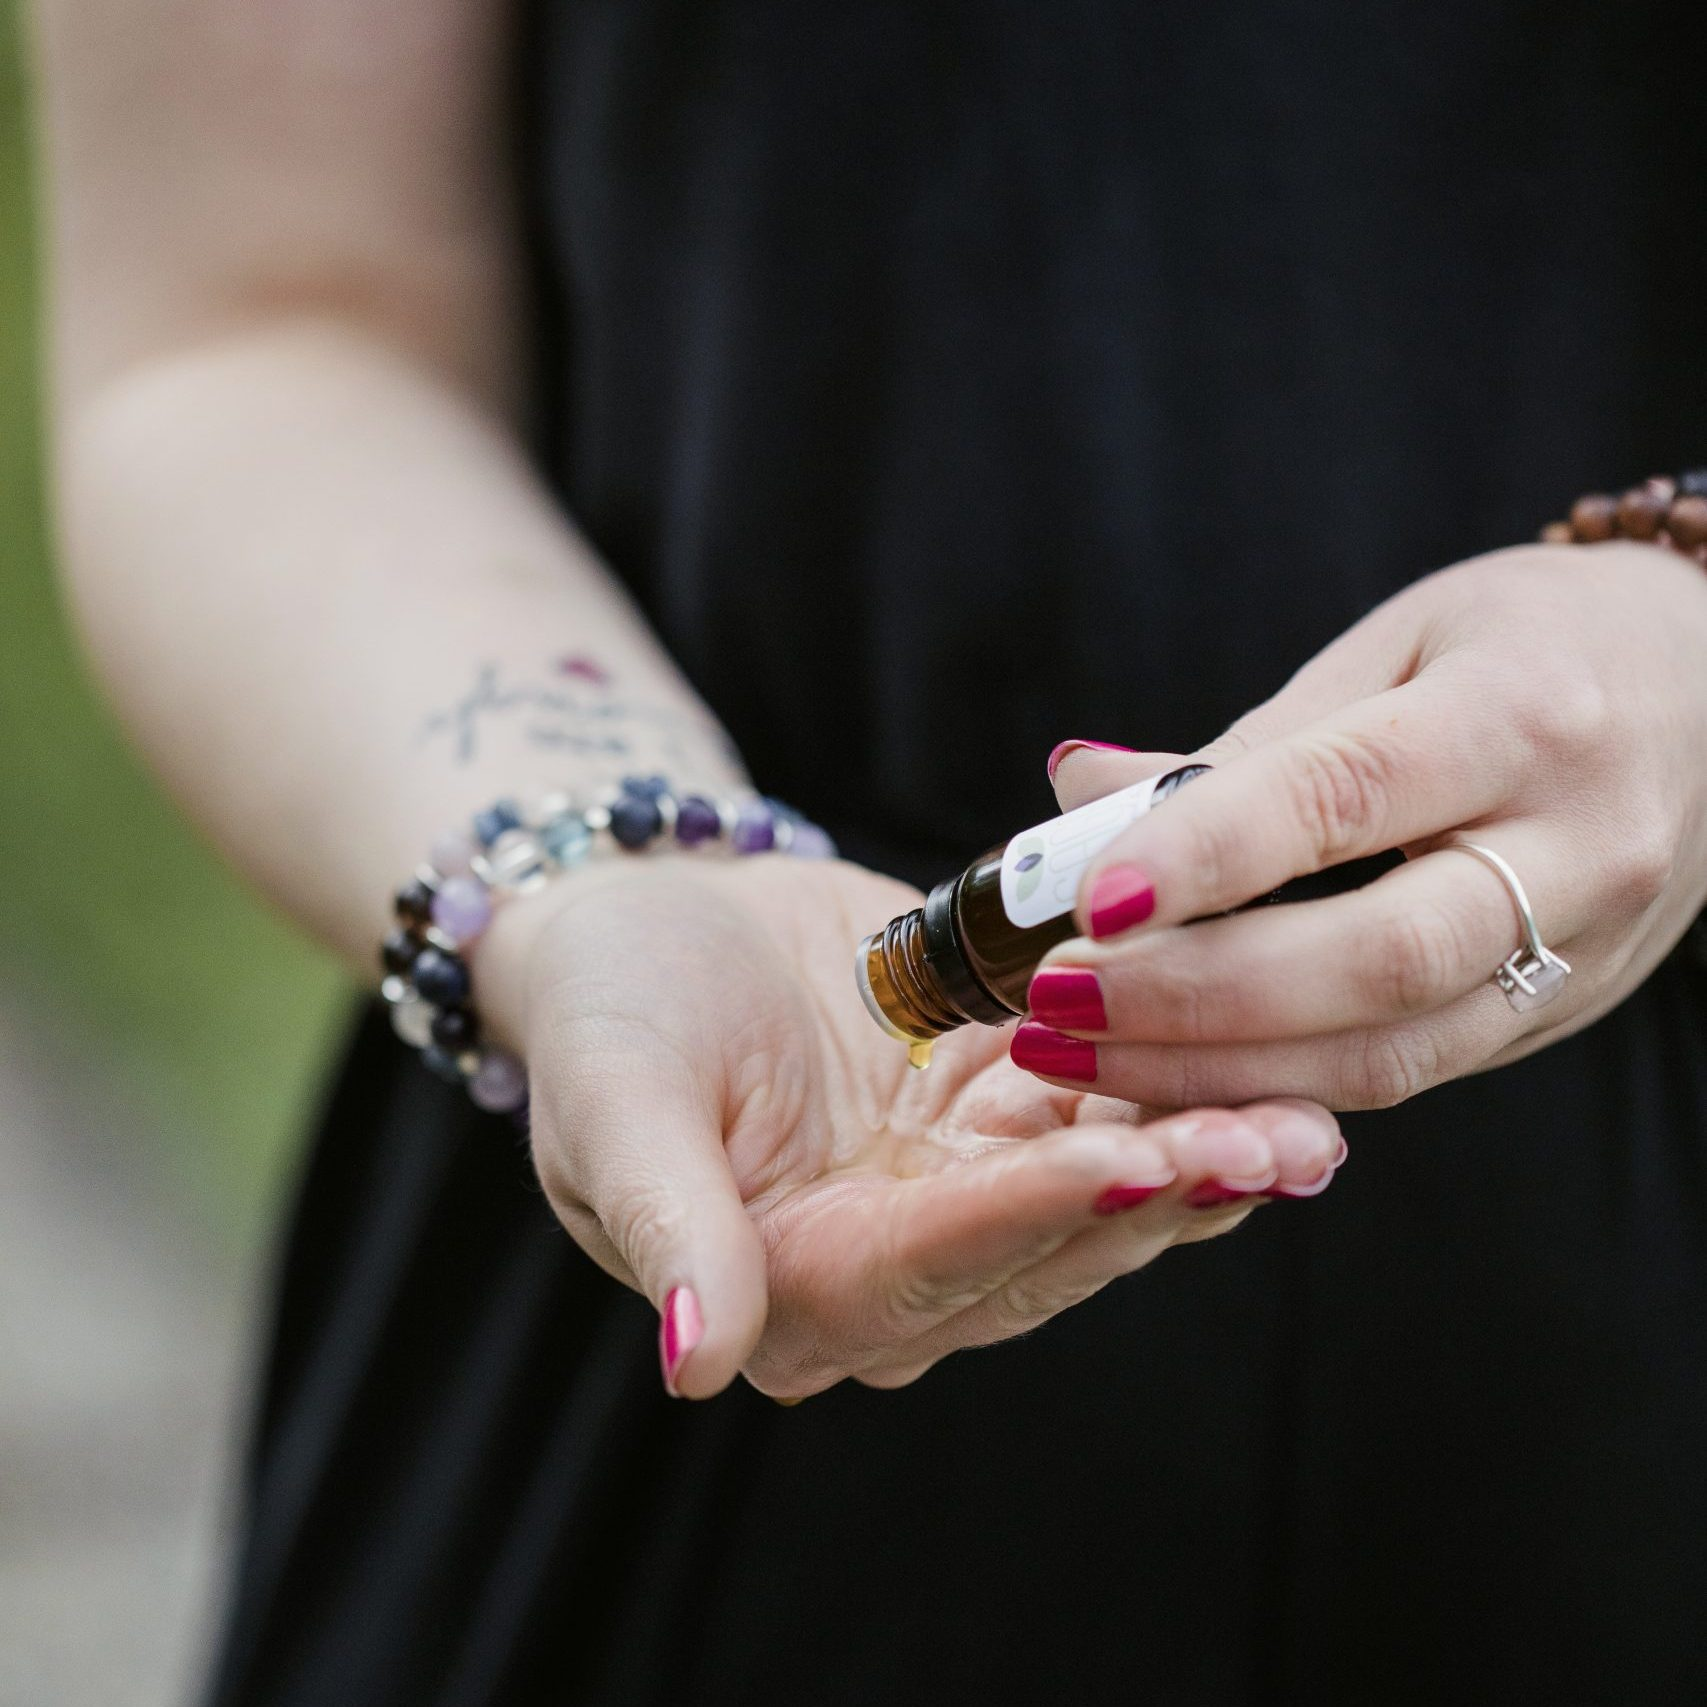 person applying essential oils to their palm